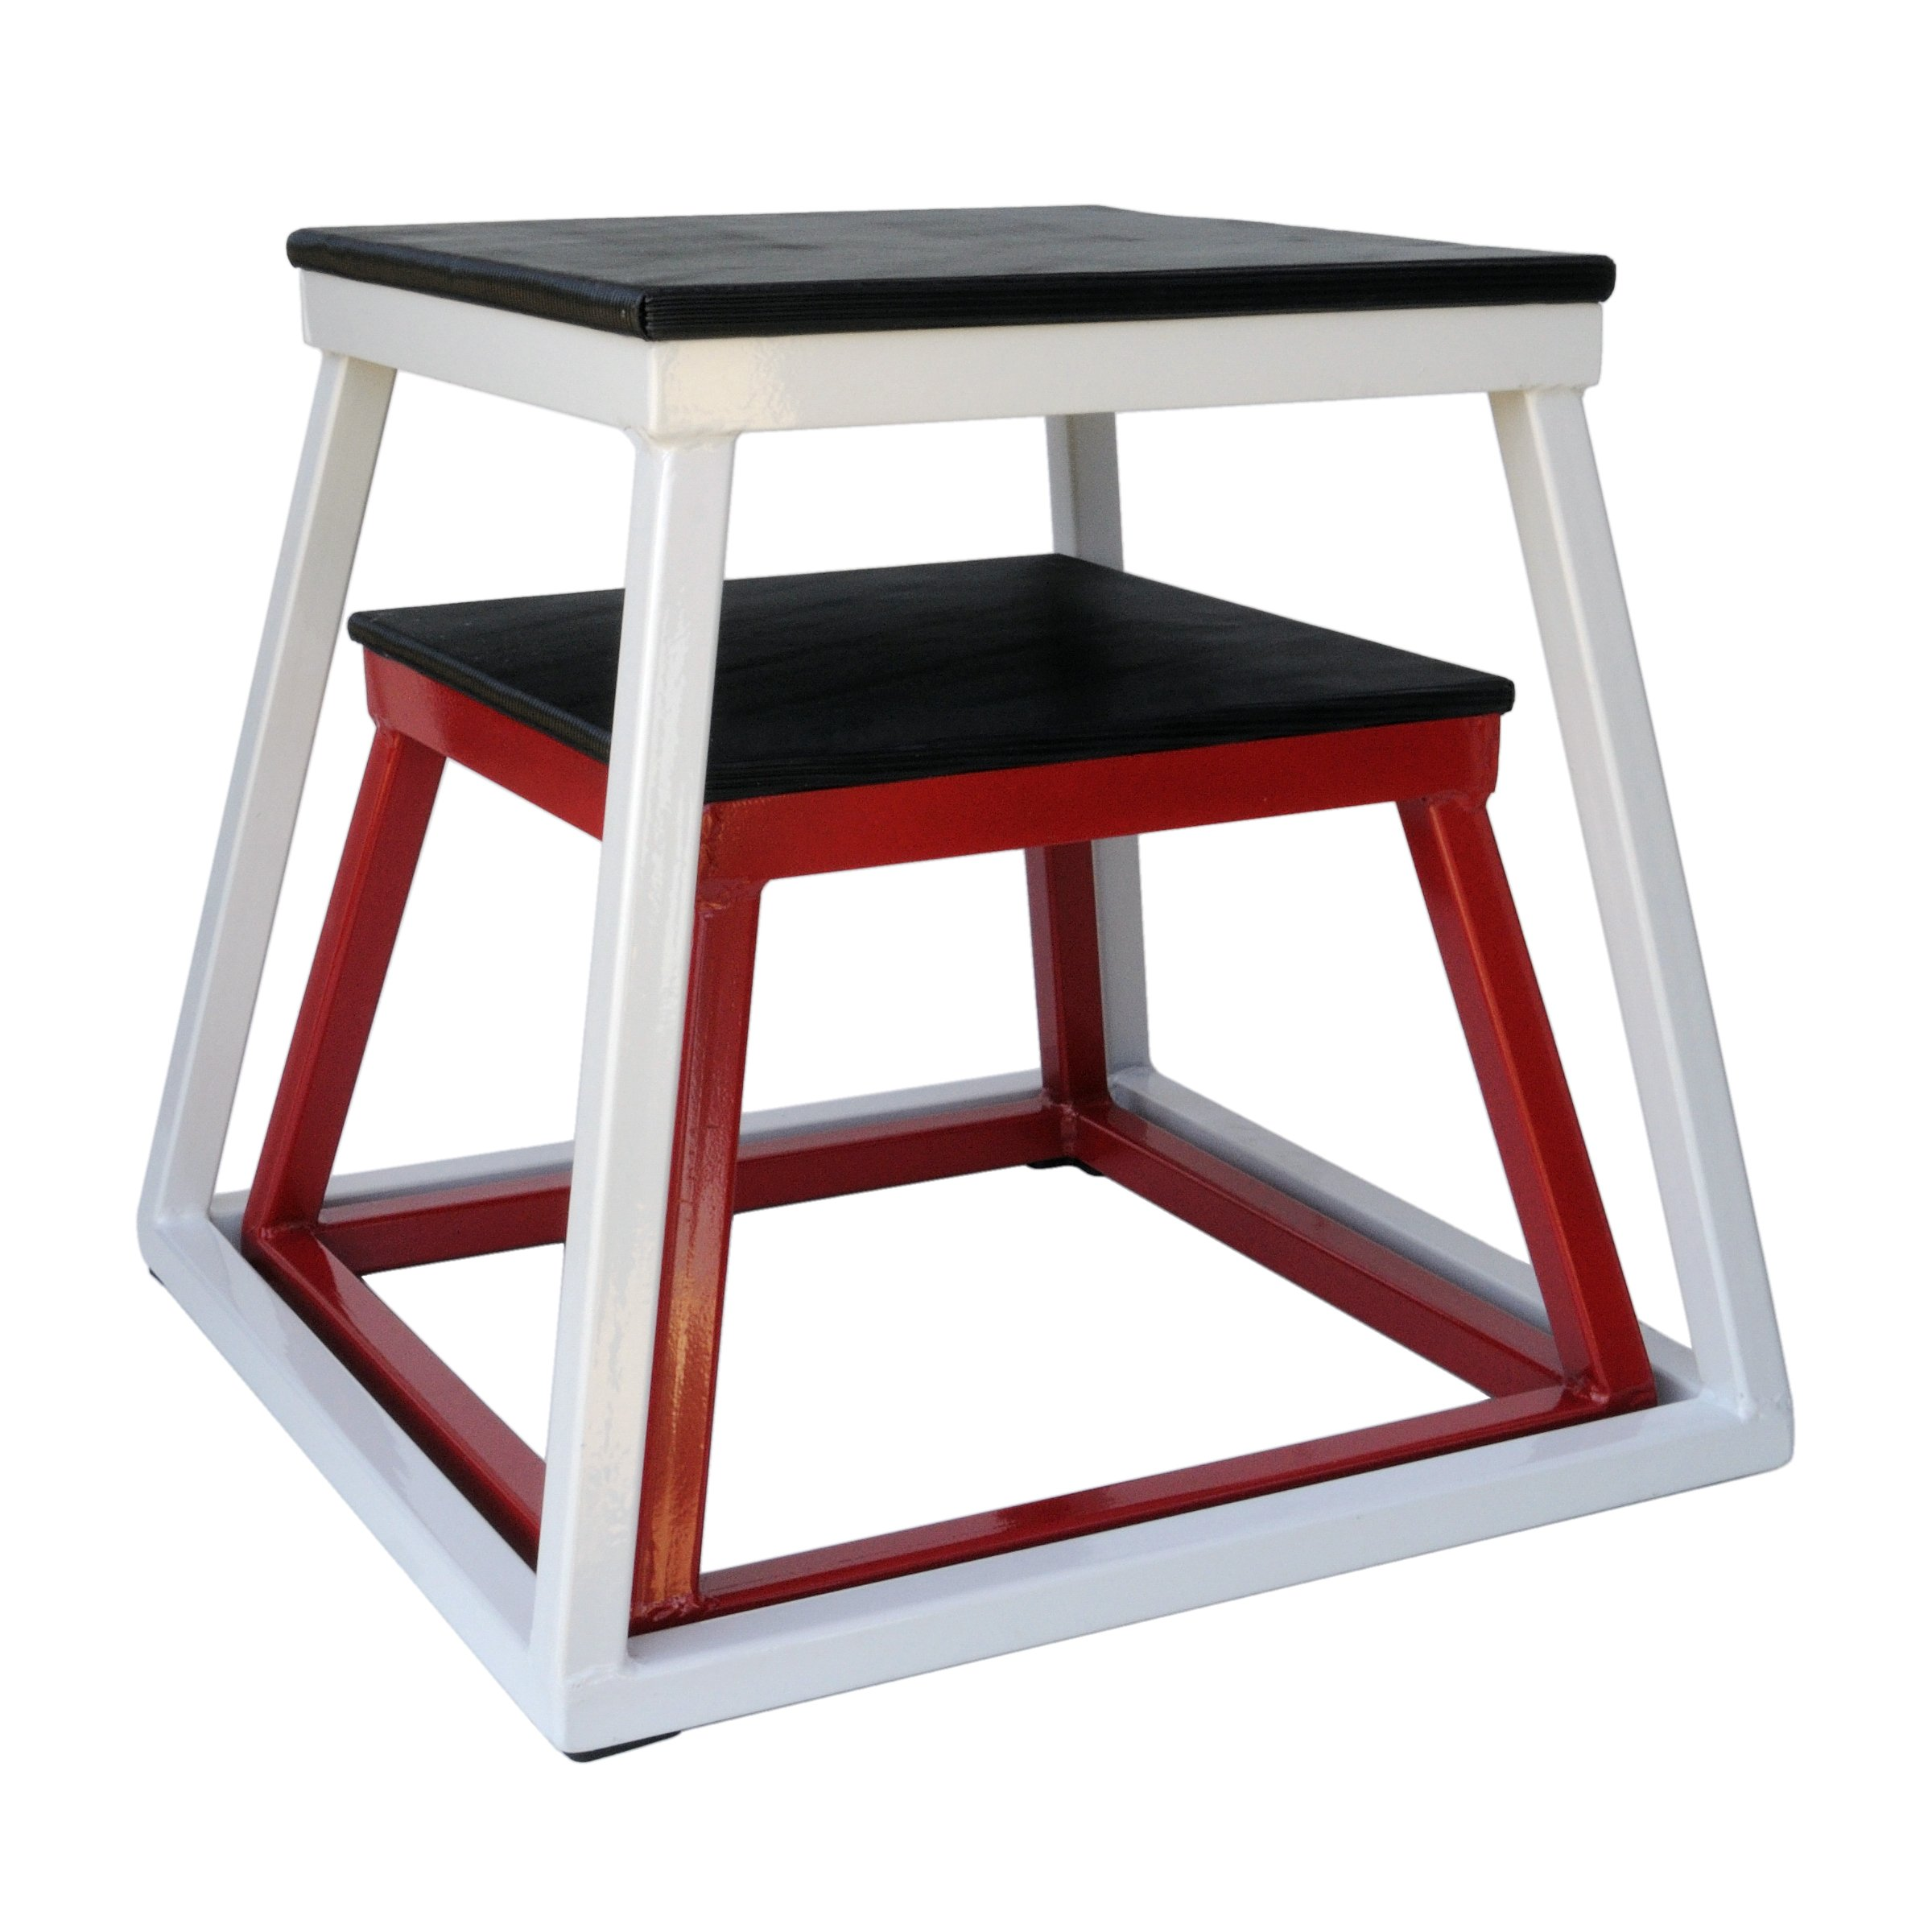 Ader 12'', 18'' Plyo Boxes (Red + White)